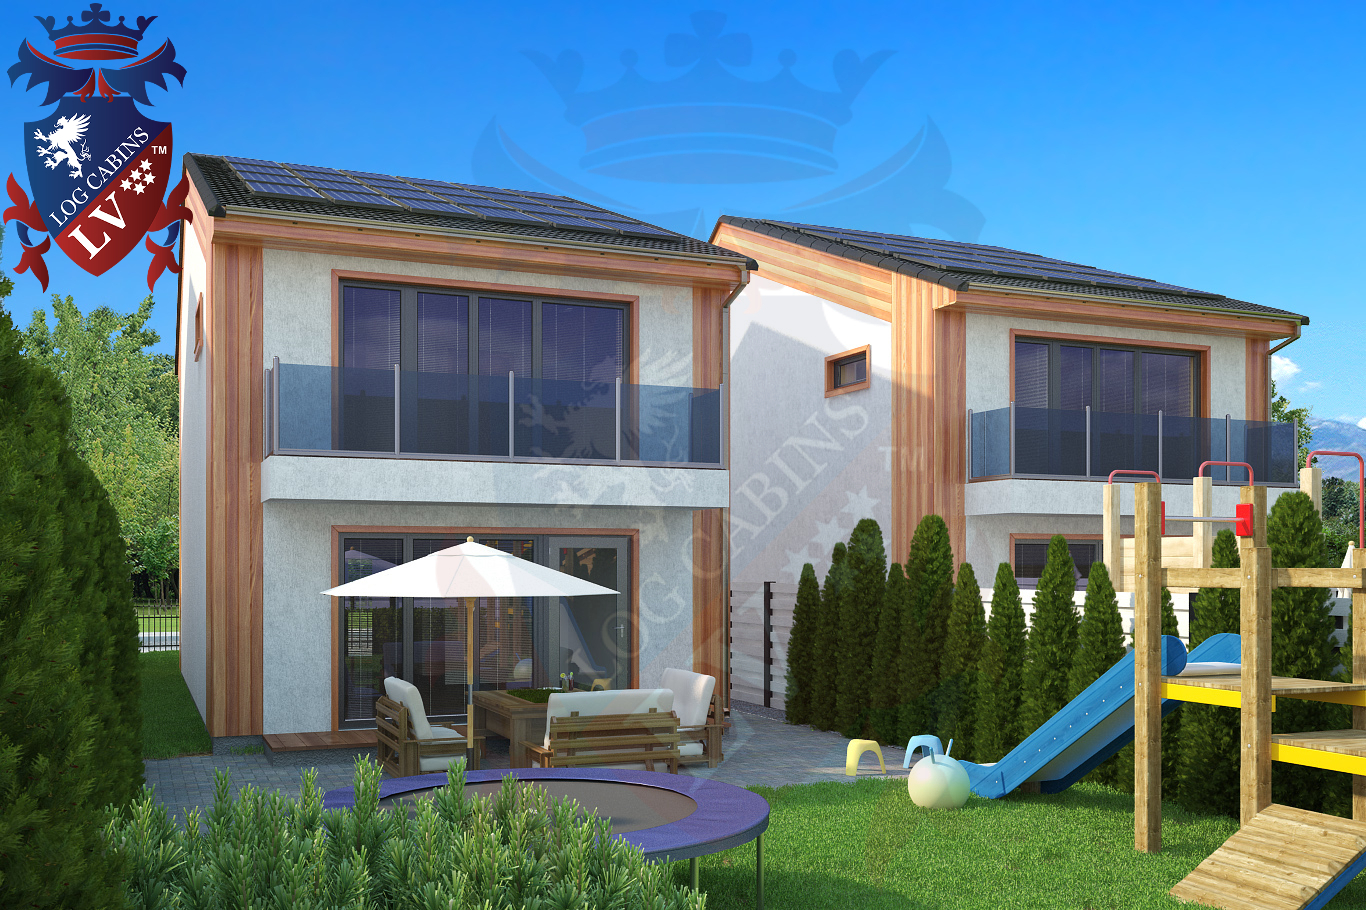 Pssive House Designs- first time buyers homes  05